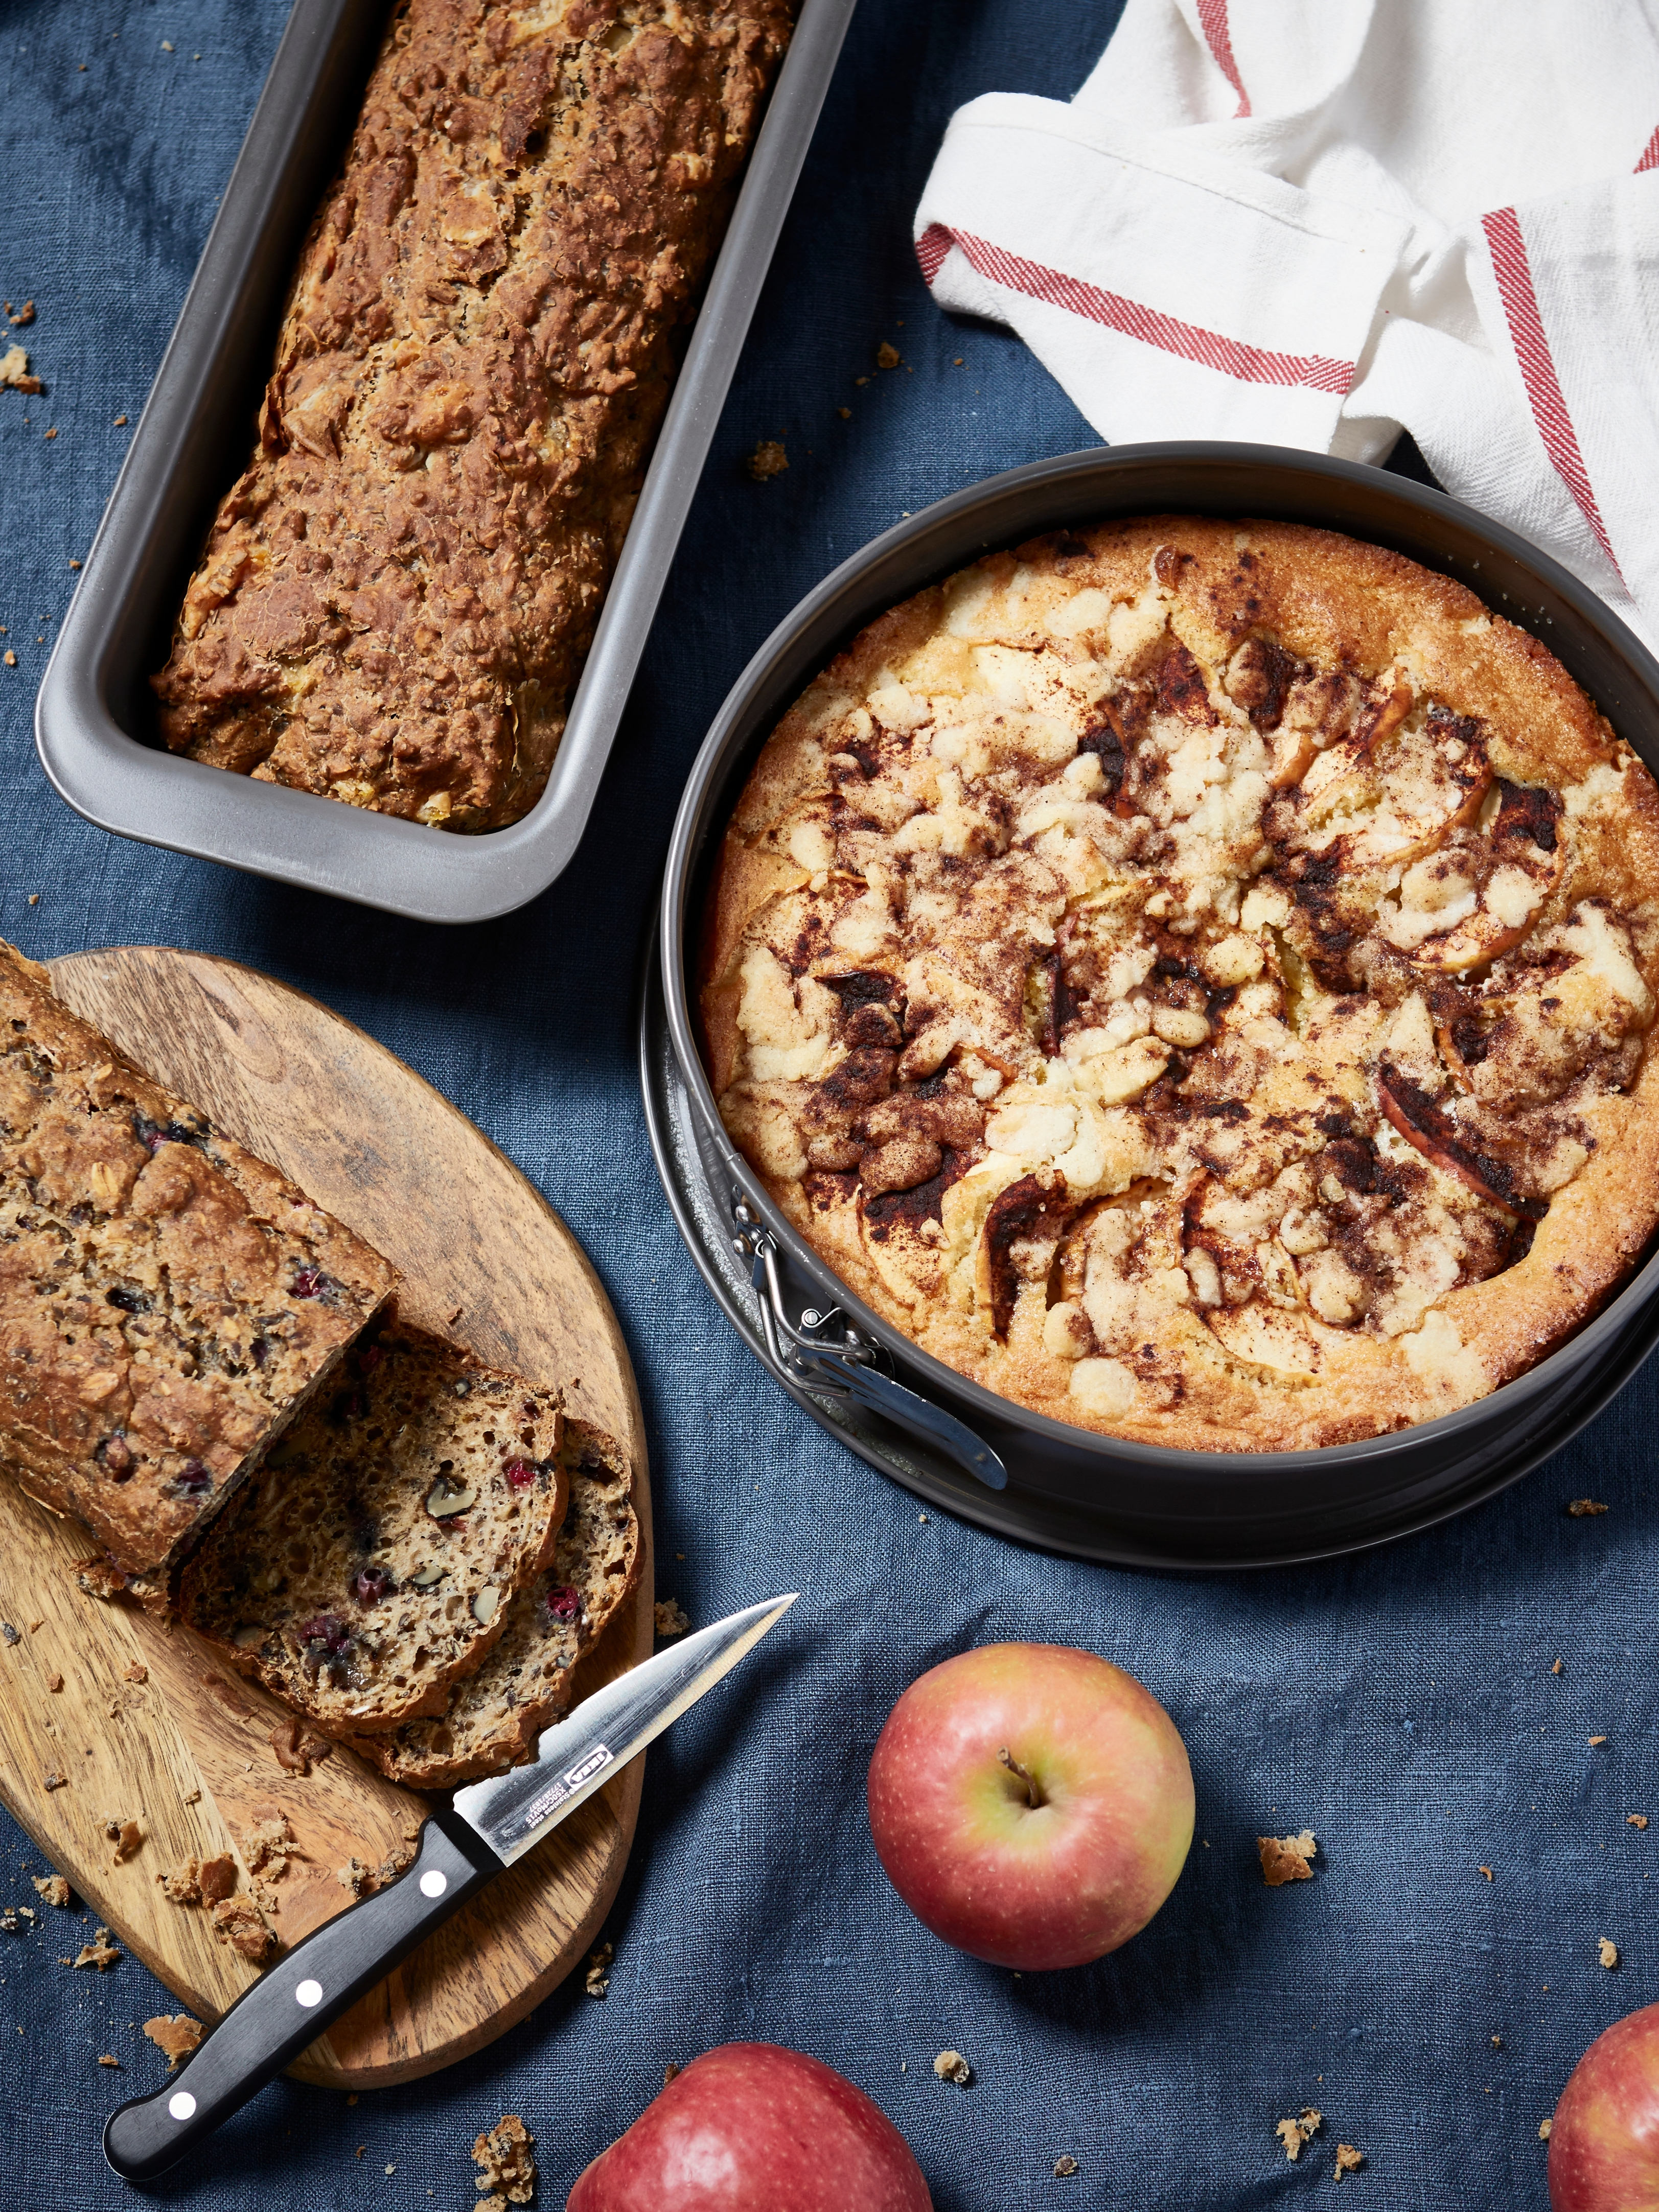 HEMMABAK springform pan with baked apple cake; cutting knife and fresh apple on the side.